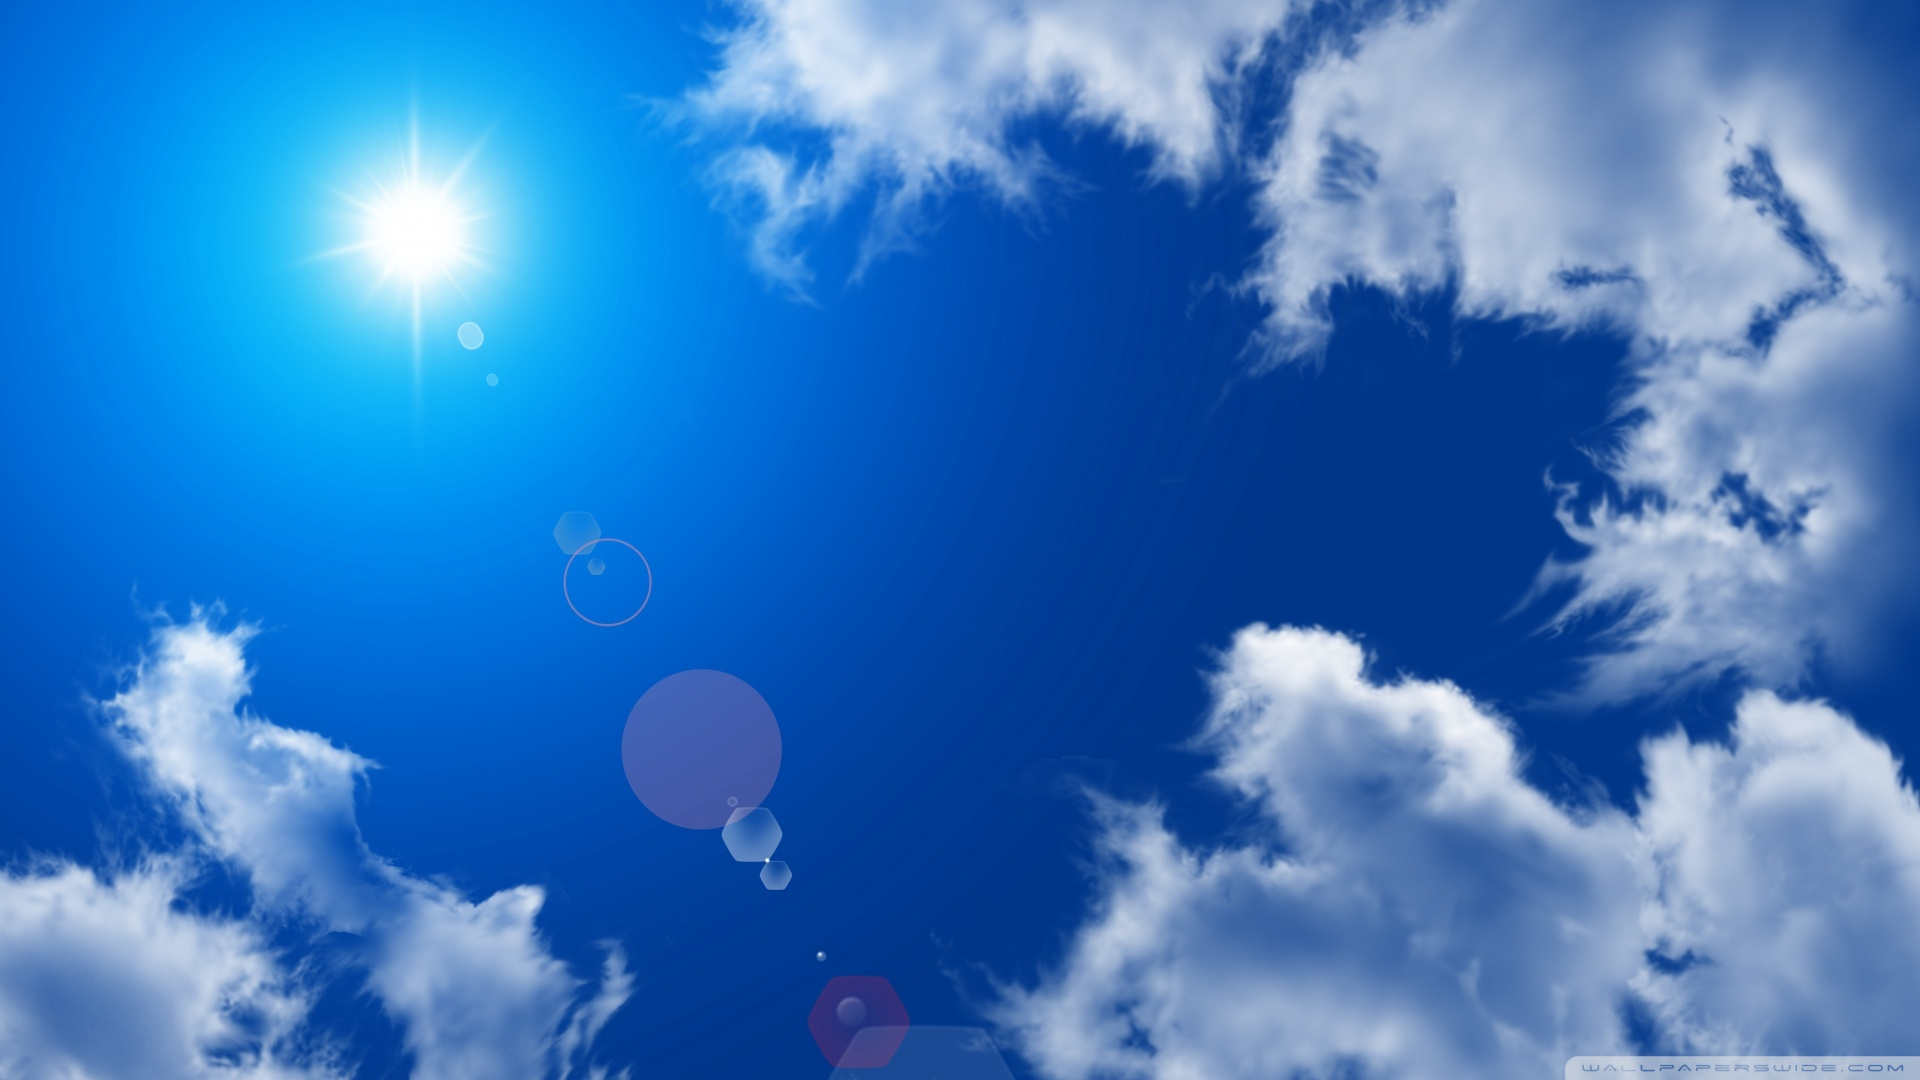 summer_sky-wallpaper-1920x1080.jpg